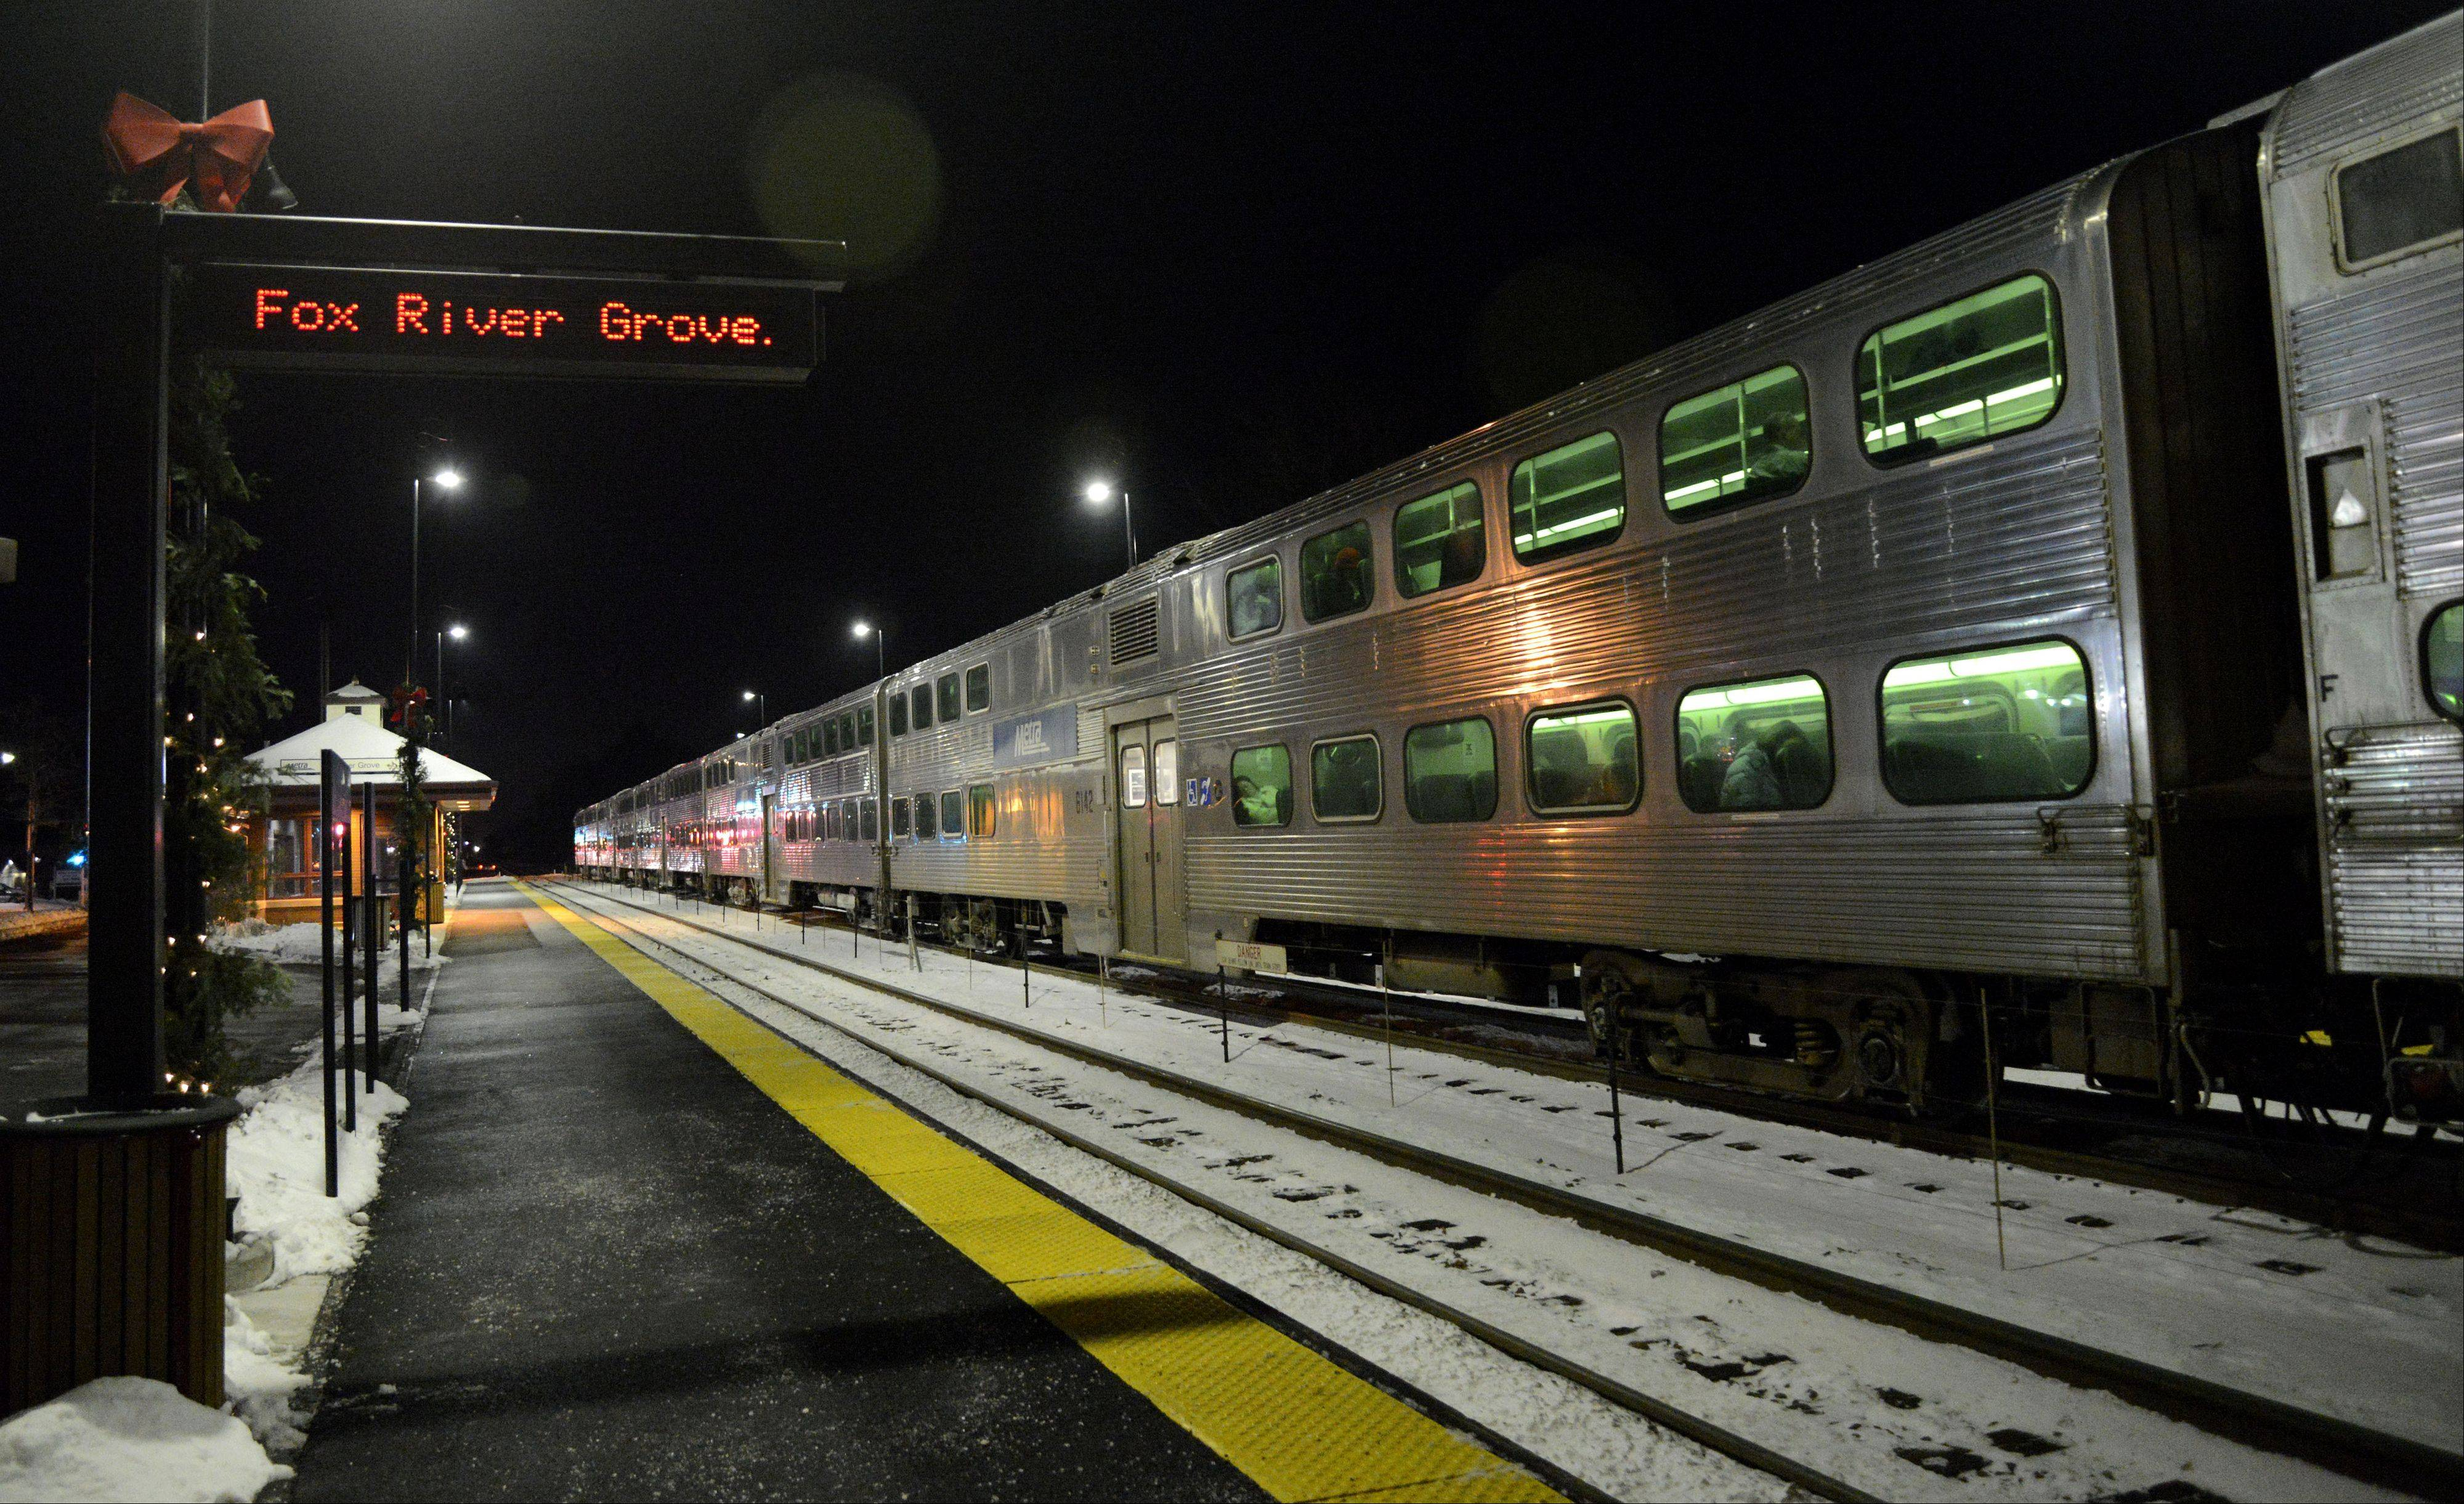 Fox River Grove Western Metra train station, located on the Union Pacific Northwest Line, opened Wednesday.